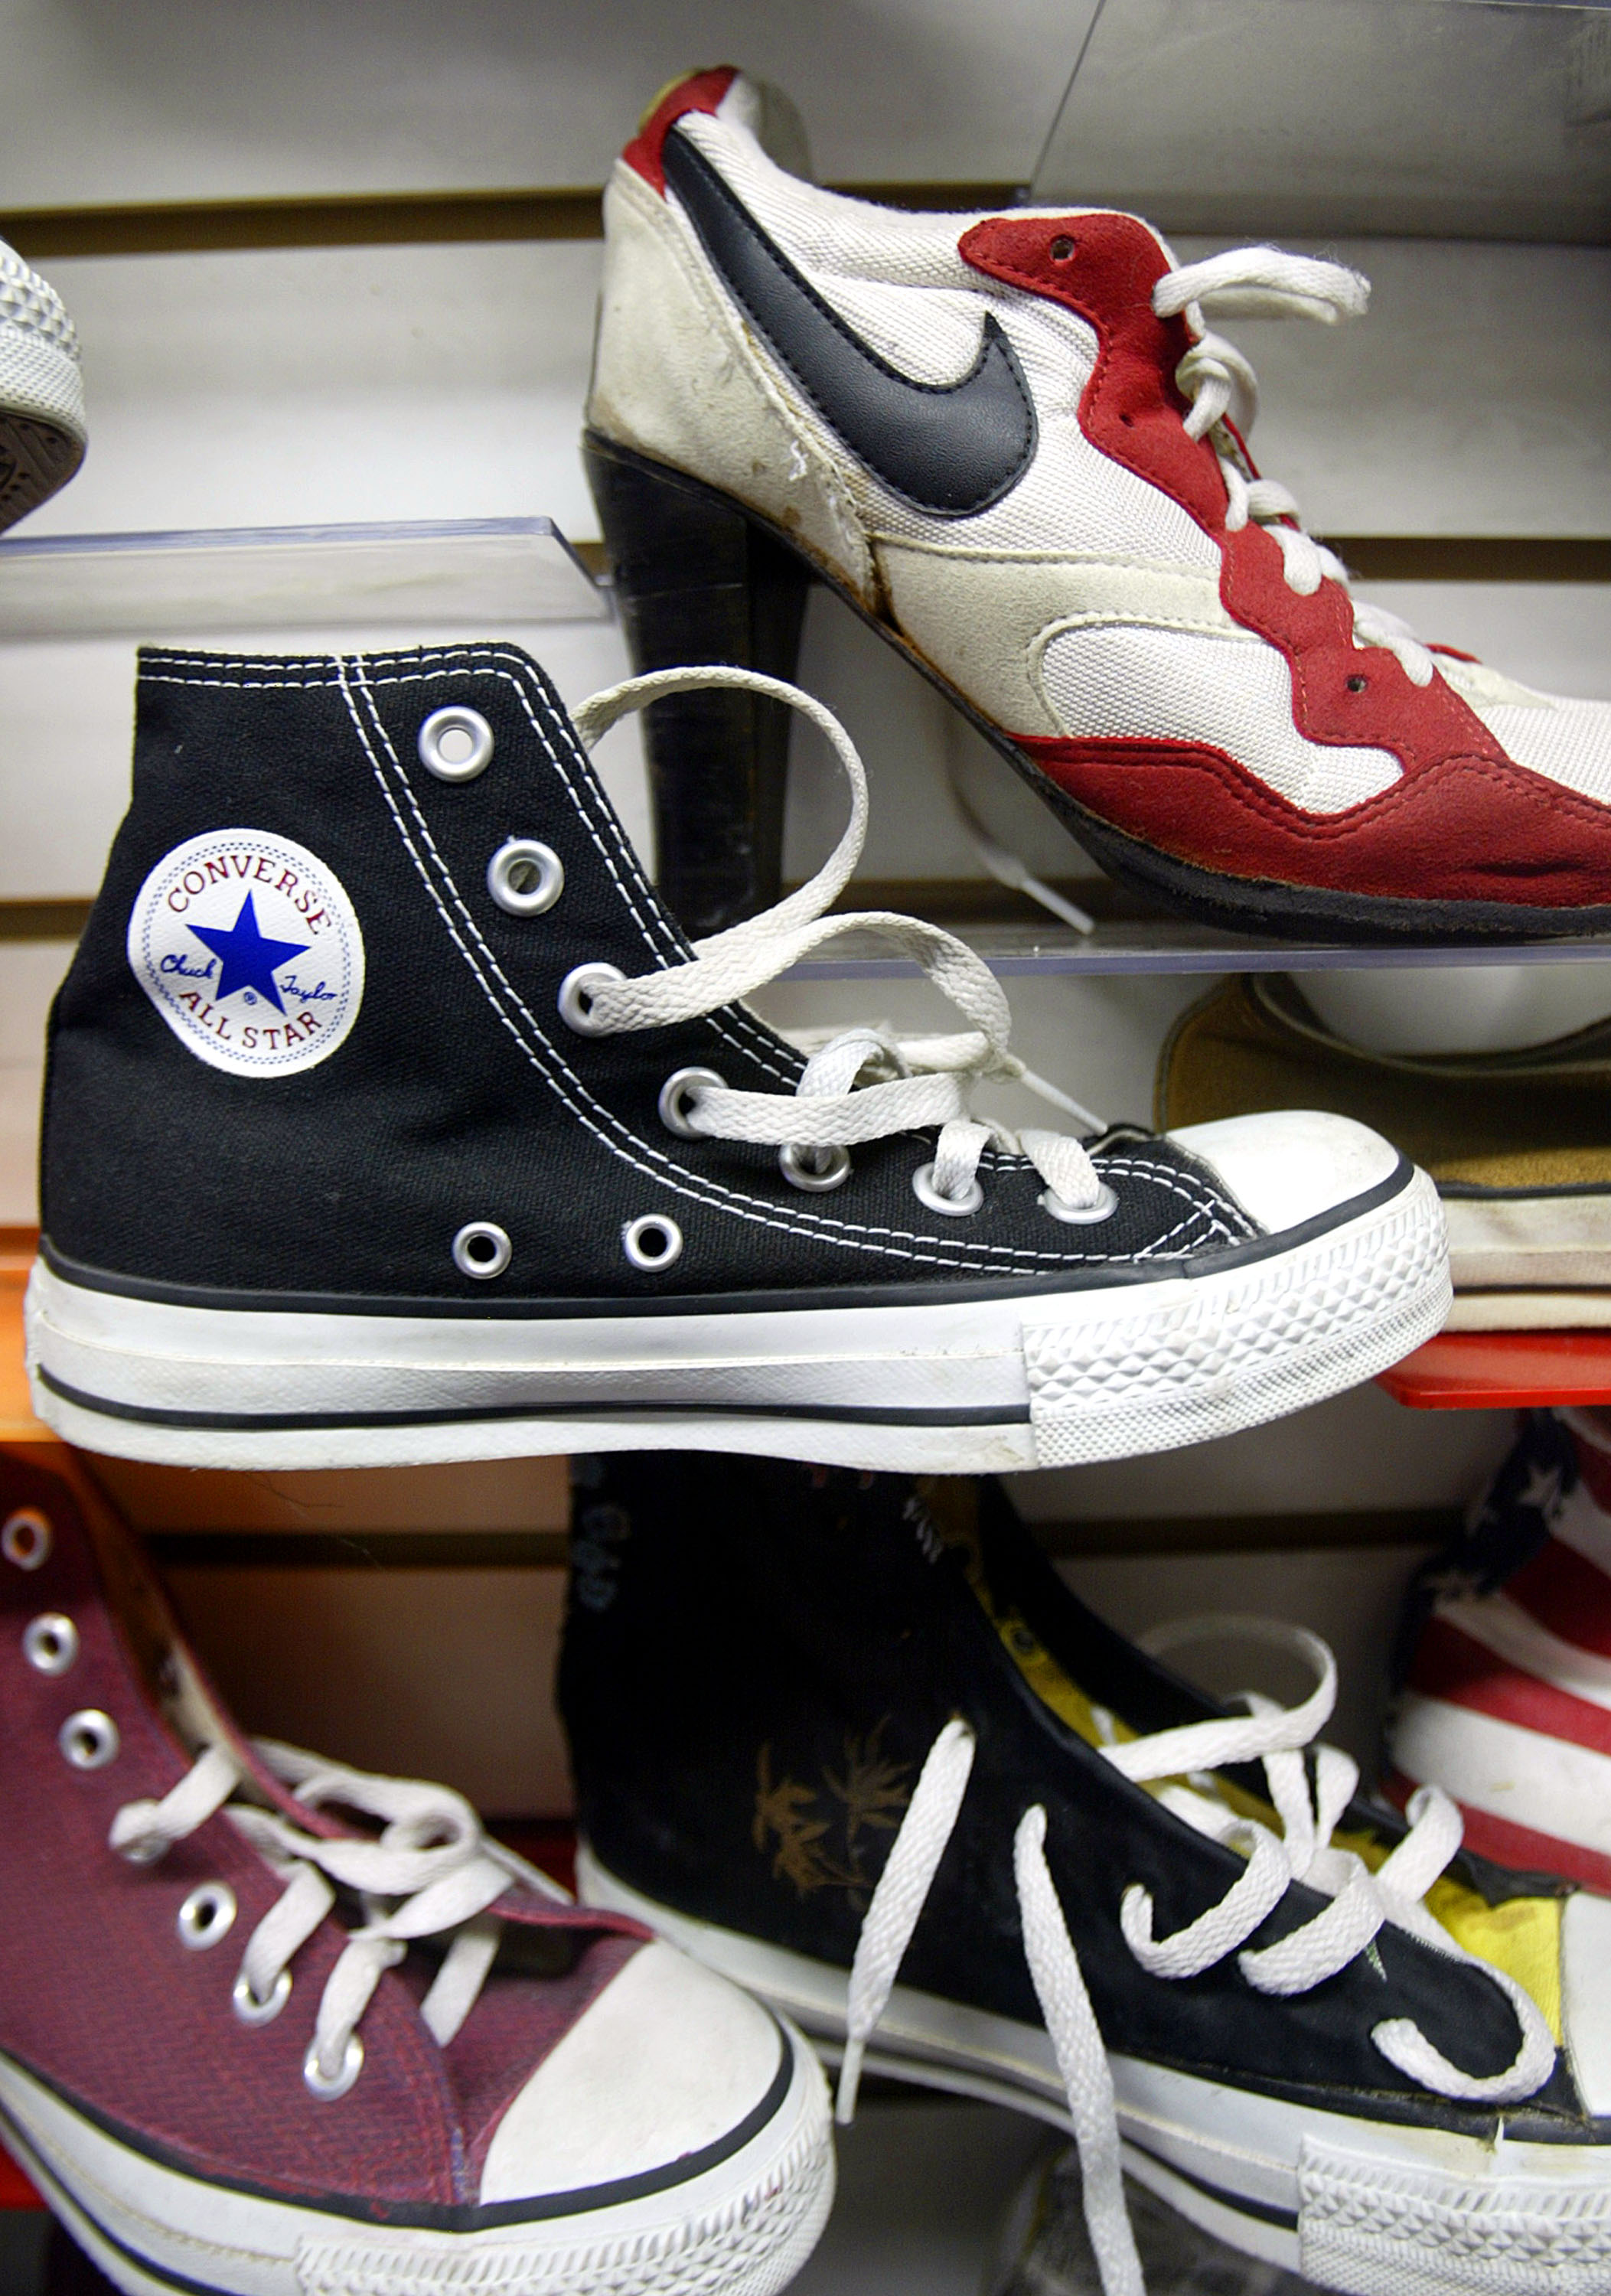 6b4725e8d5bc Converse Is Suing Walmart